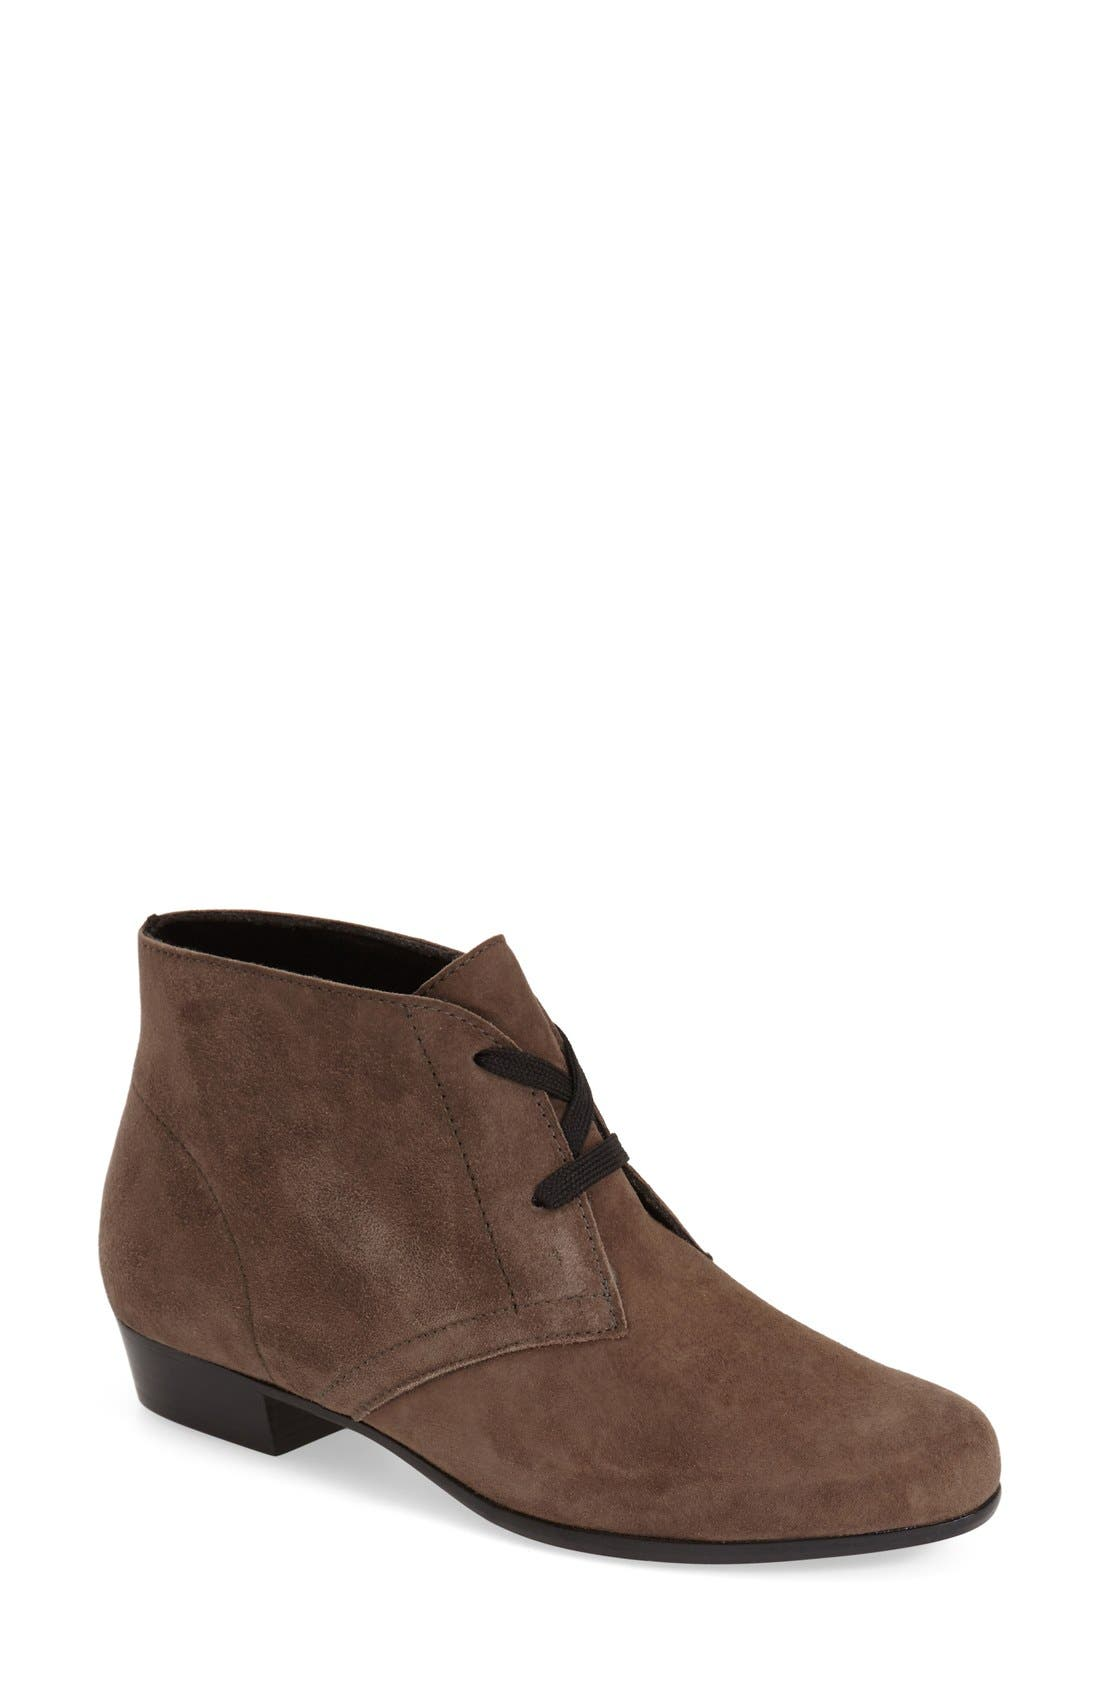 Main Image - Munro 'Sloane' Lace Up Bootie (Women)